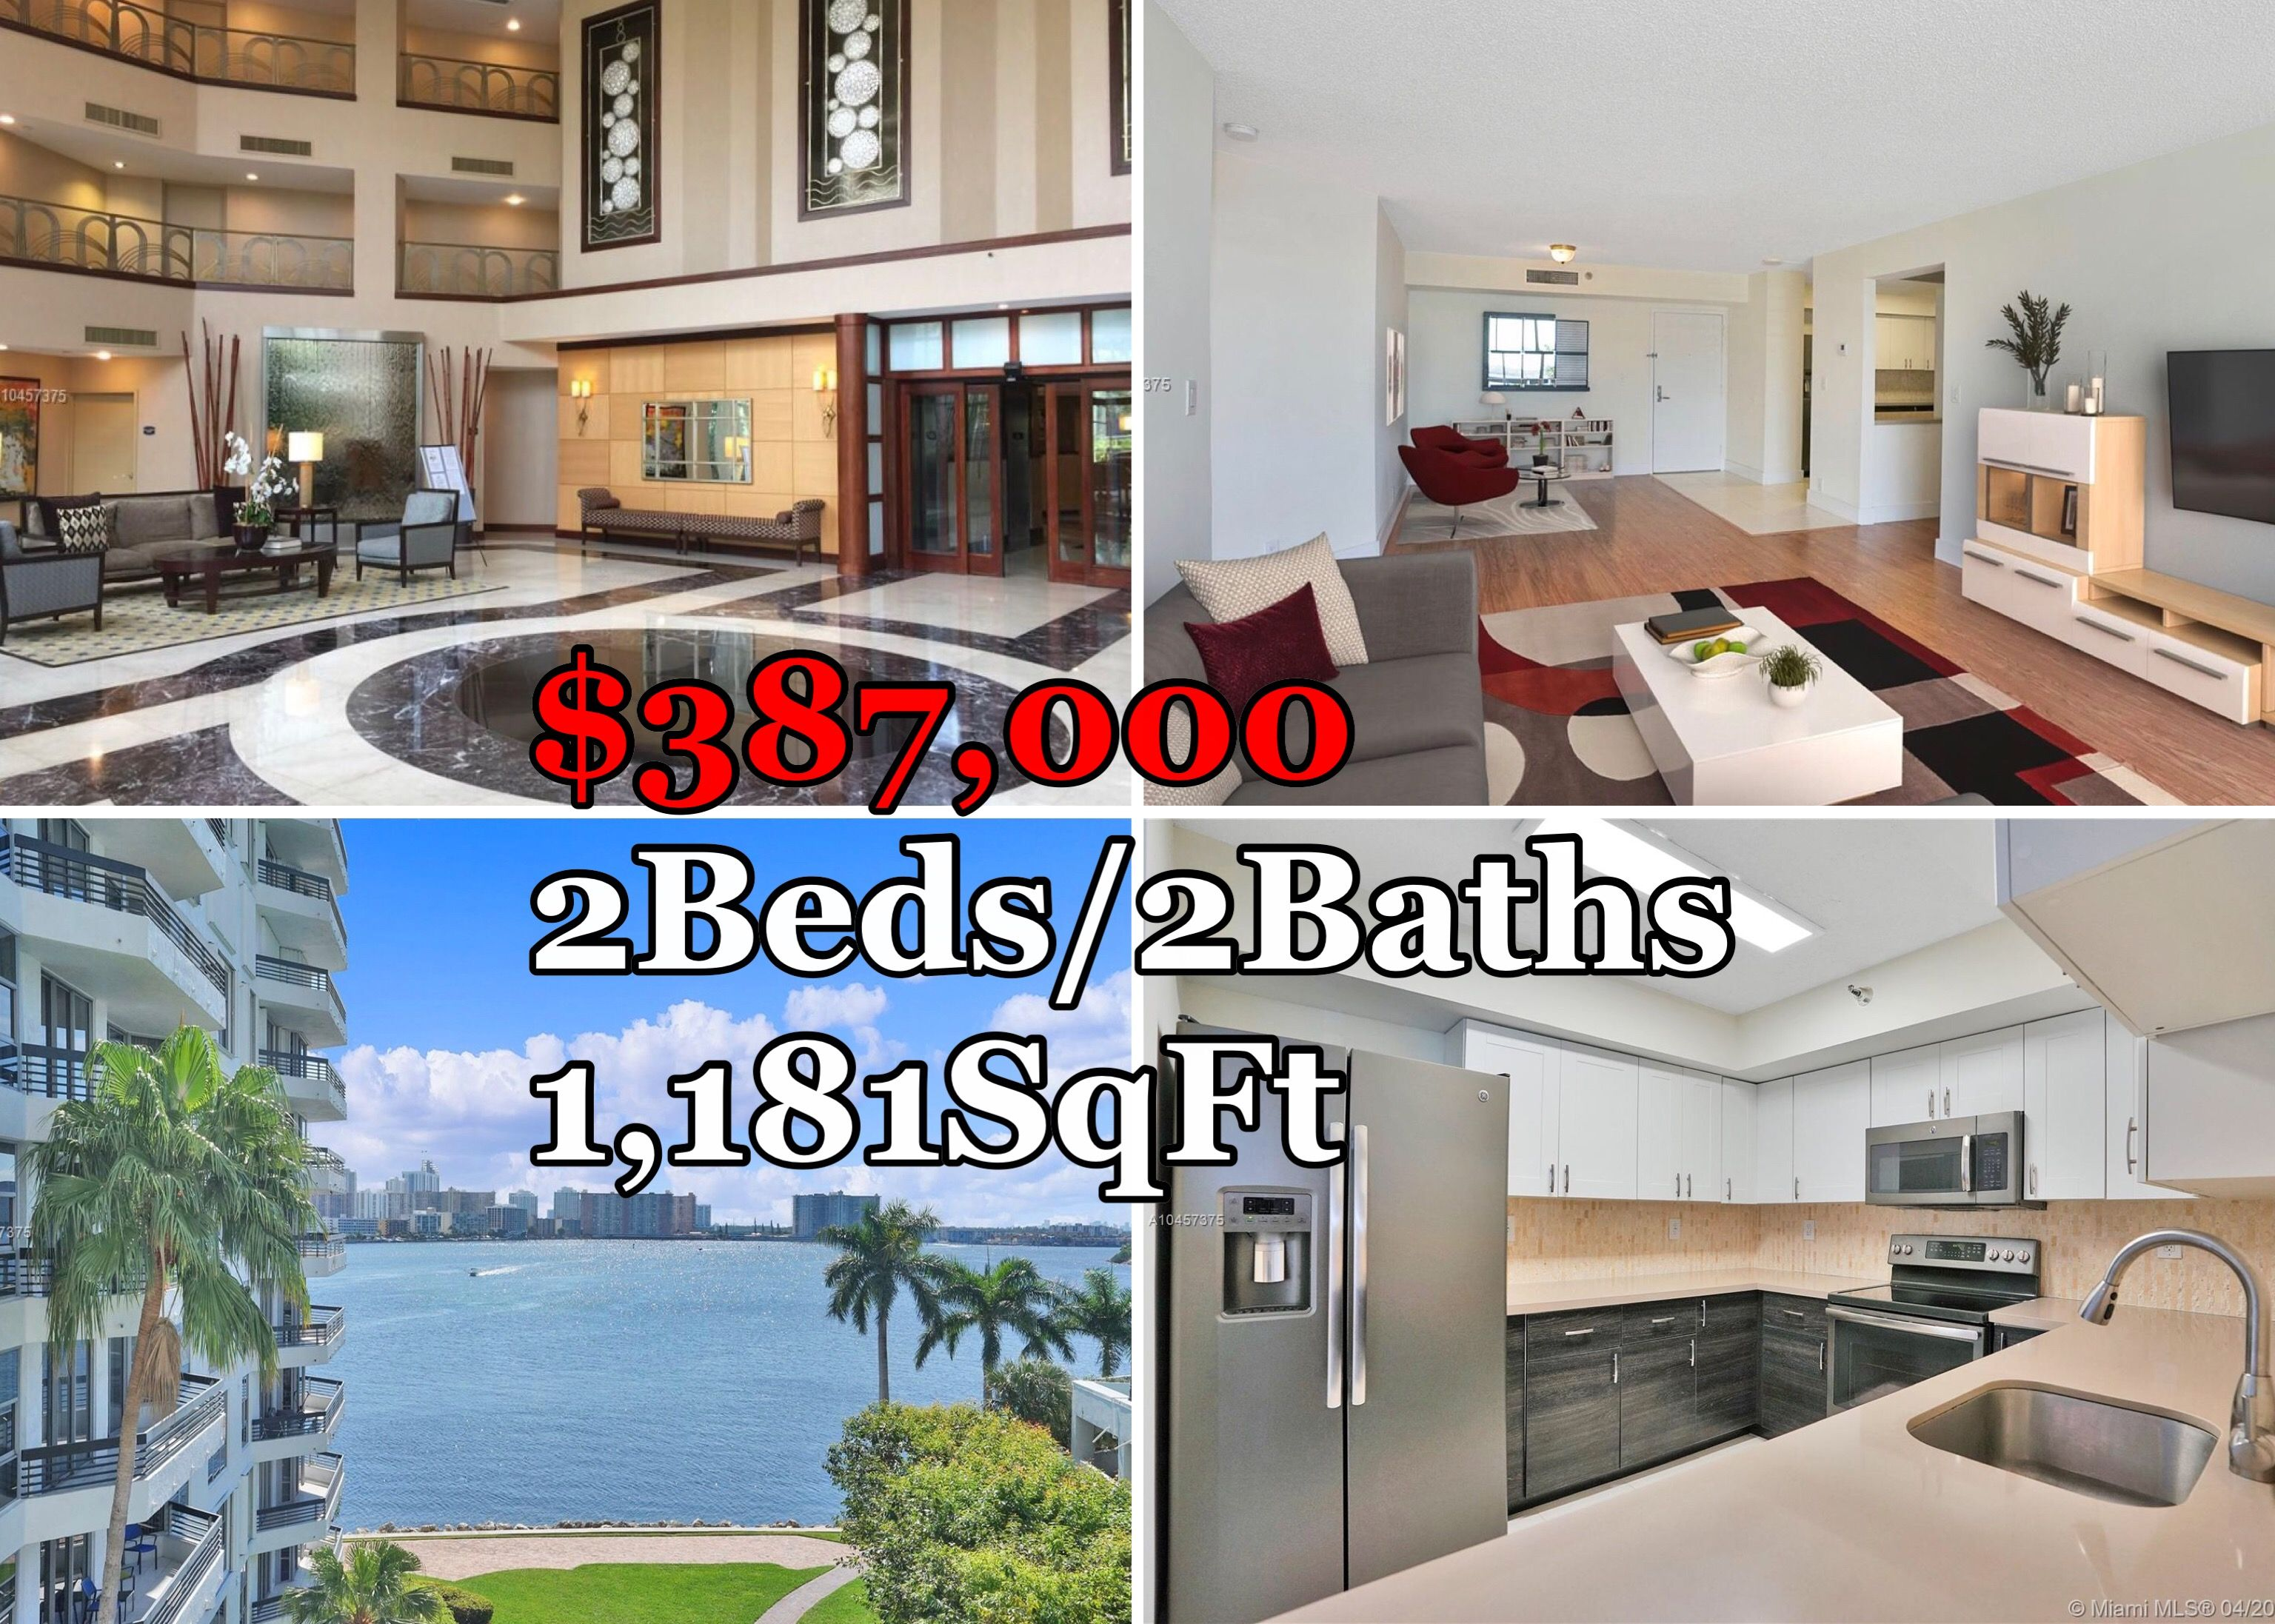 Best Deals In Aventura Two Bedroom Condos For Sale Under 400 000 Low Maintenance Low Property Taxes 1 72 Millage Con Condo Real Estate Condos For Sale